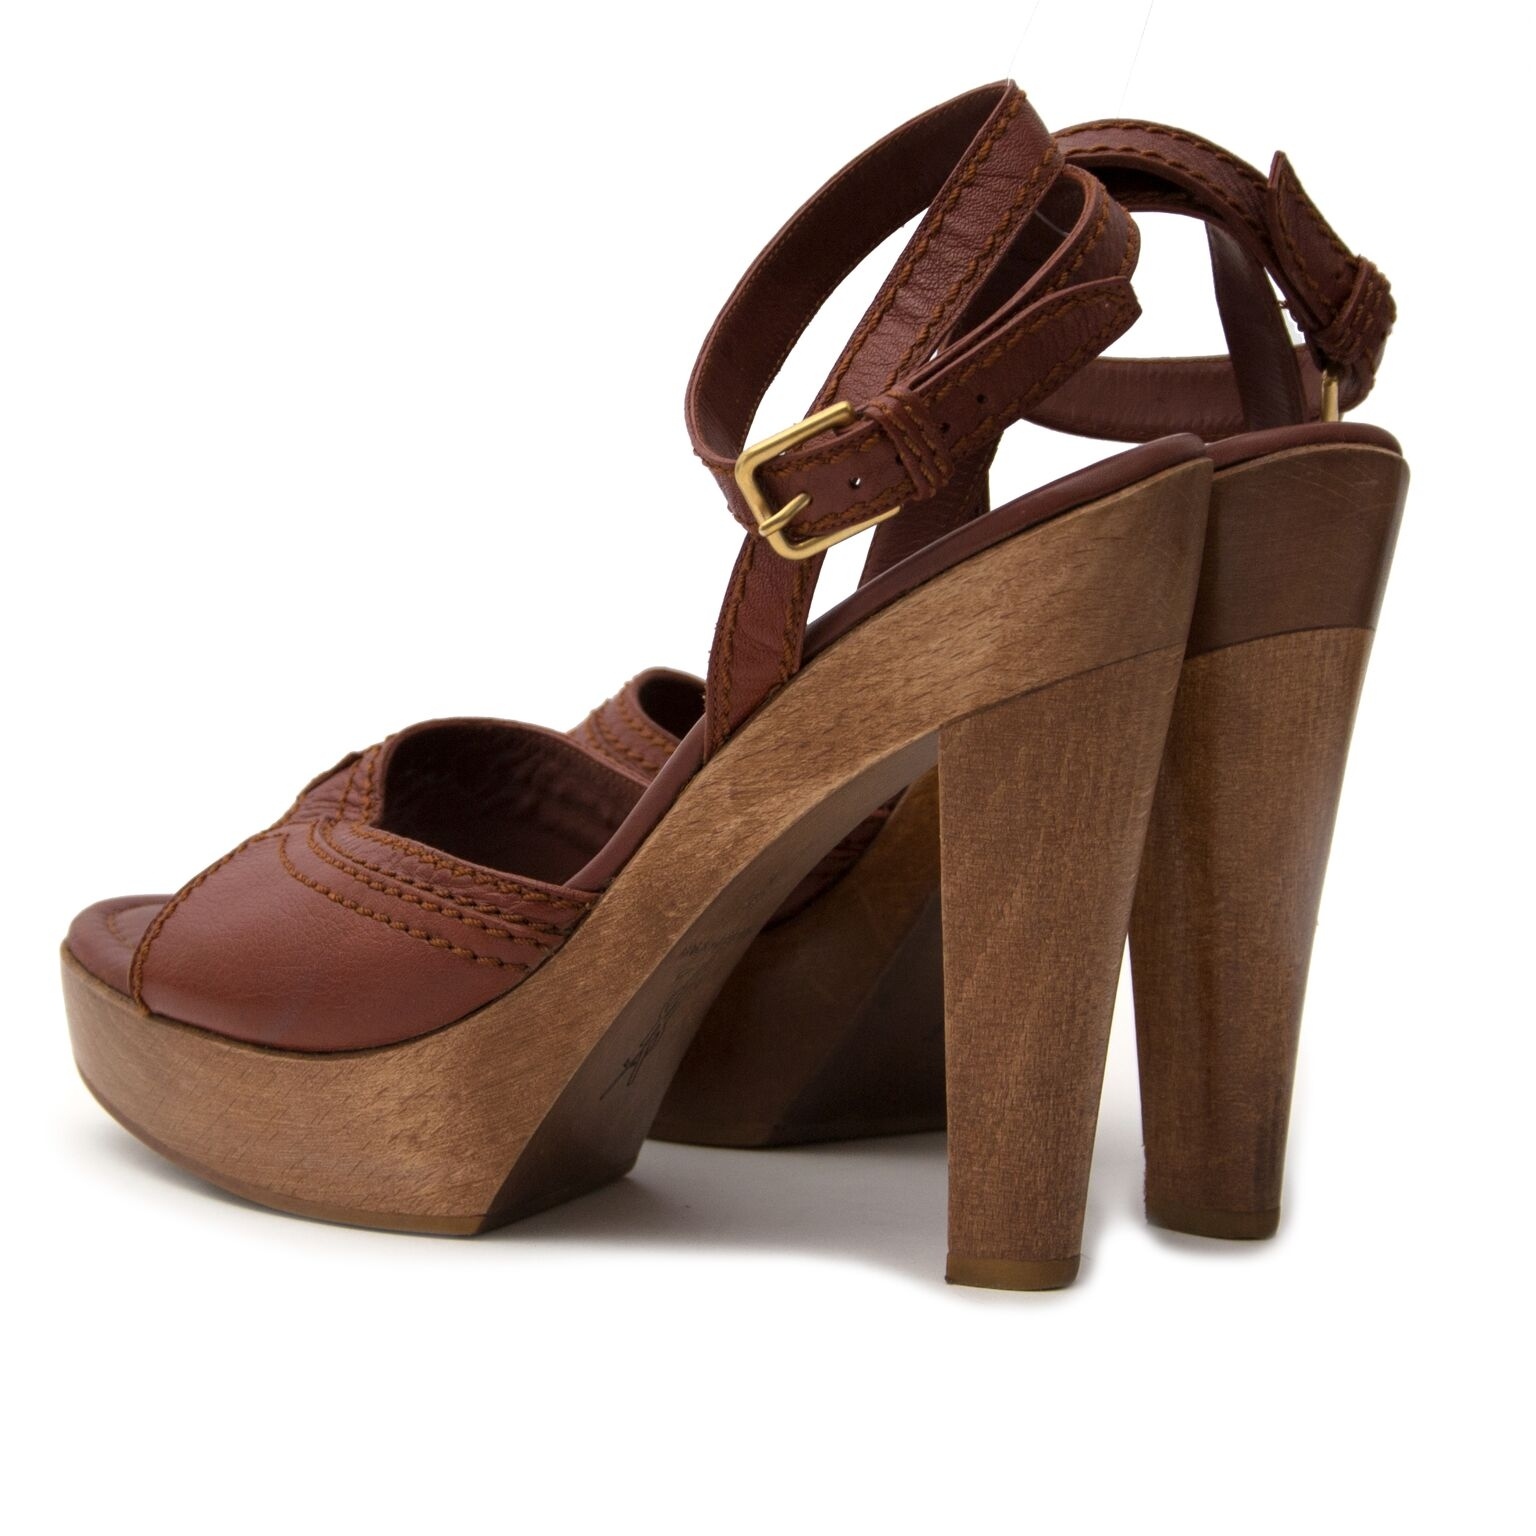 buy Yves Saint Laurent Brown Ankle Strap Wooden Heels Sandal Pump at labellov